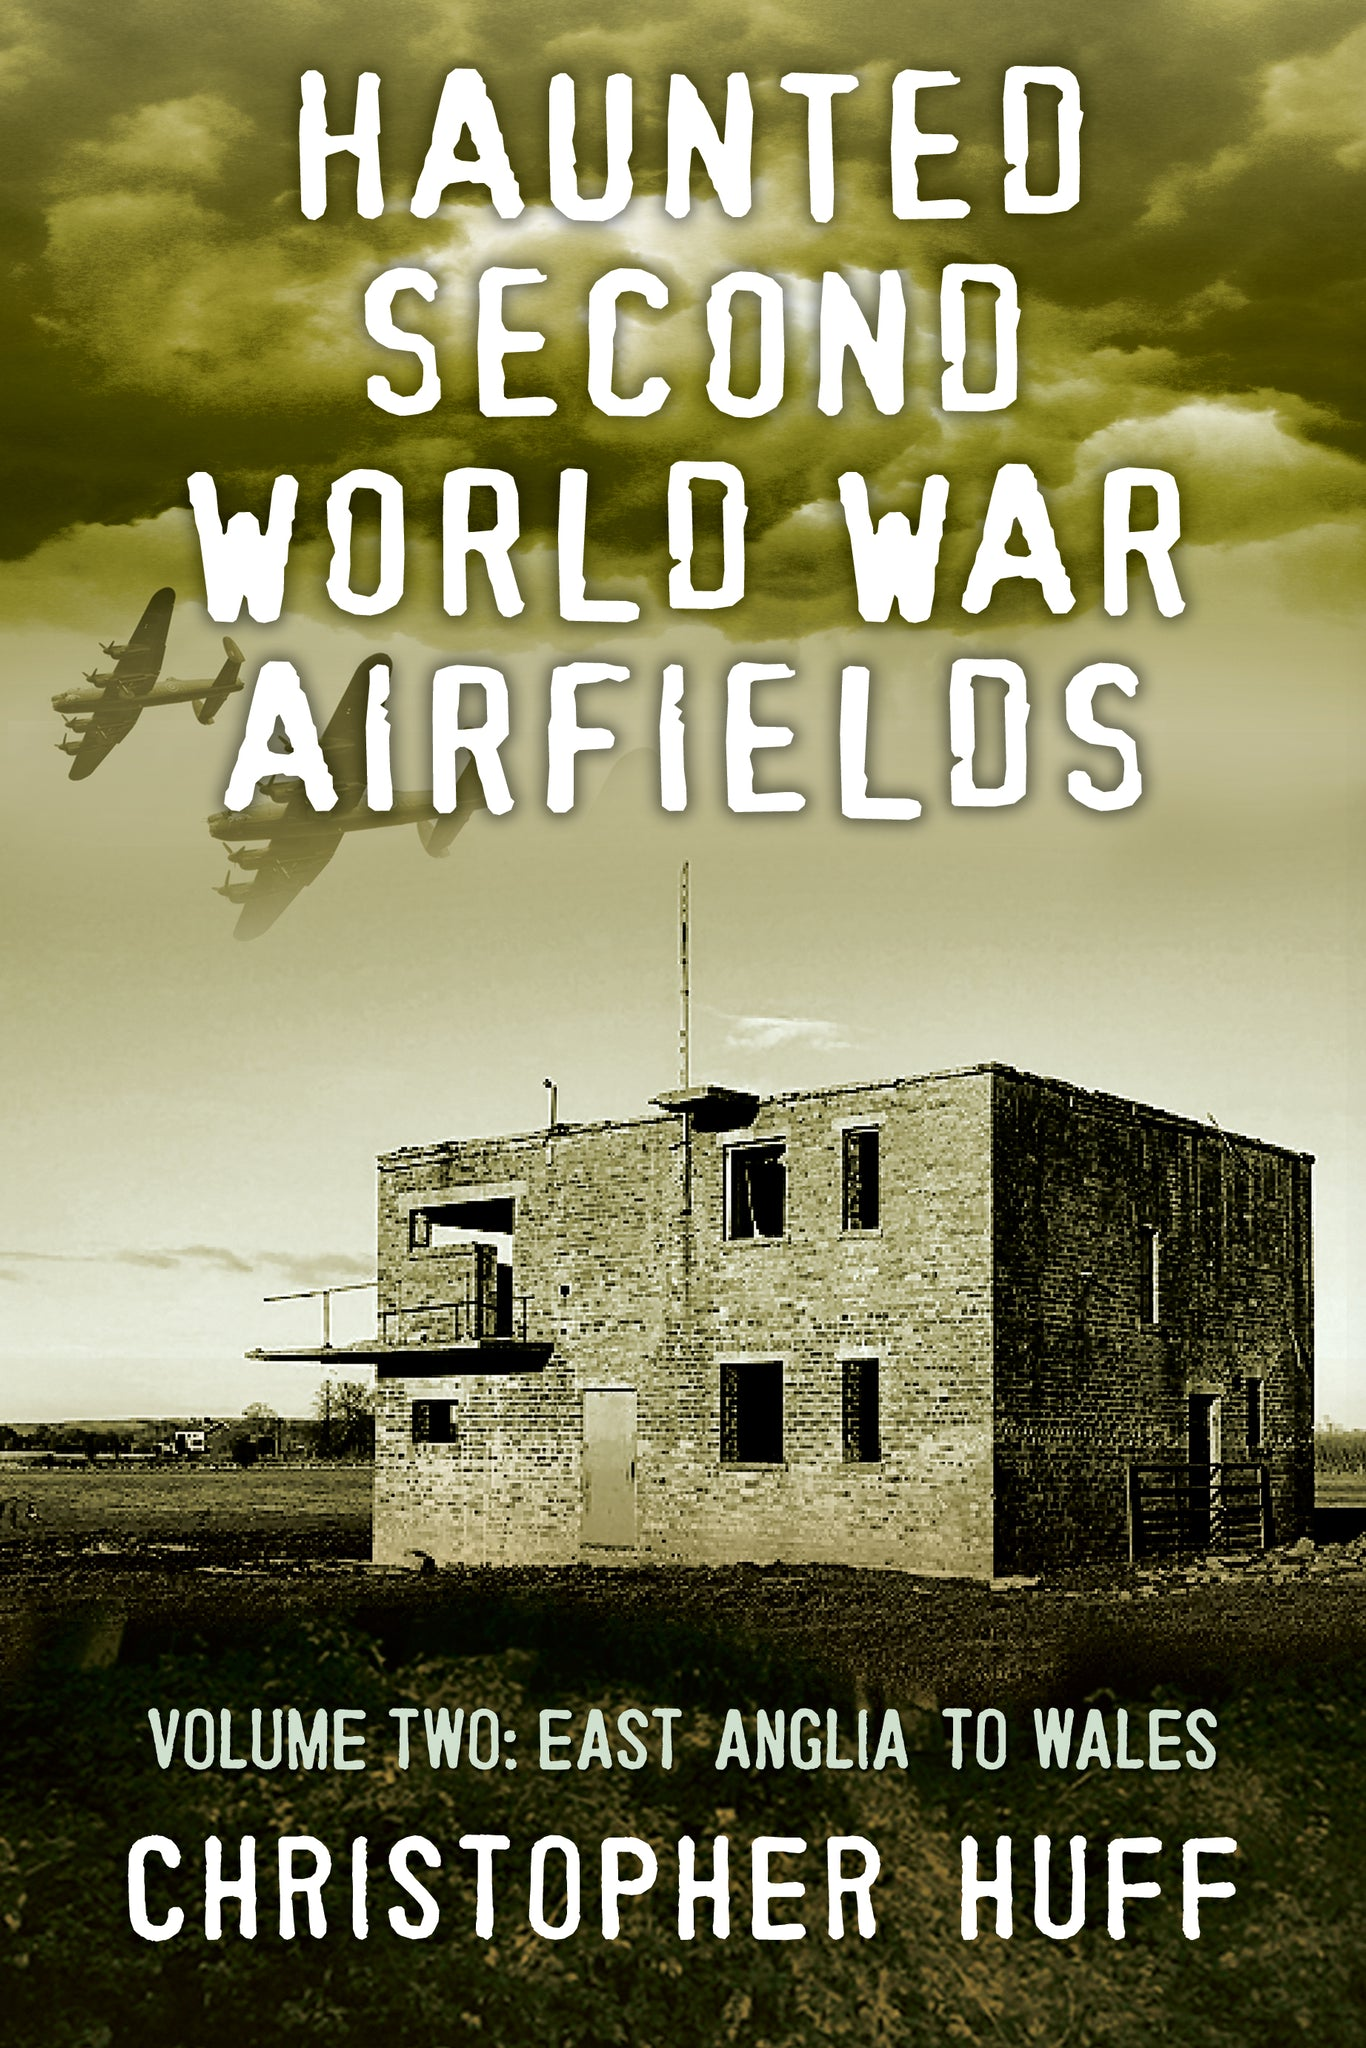 Haunted Second World War Airfields: Volume Two: East Anglia to Wales